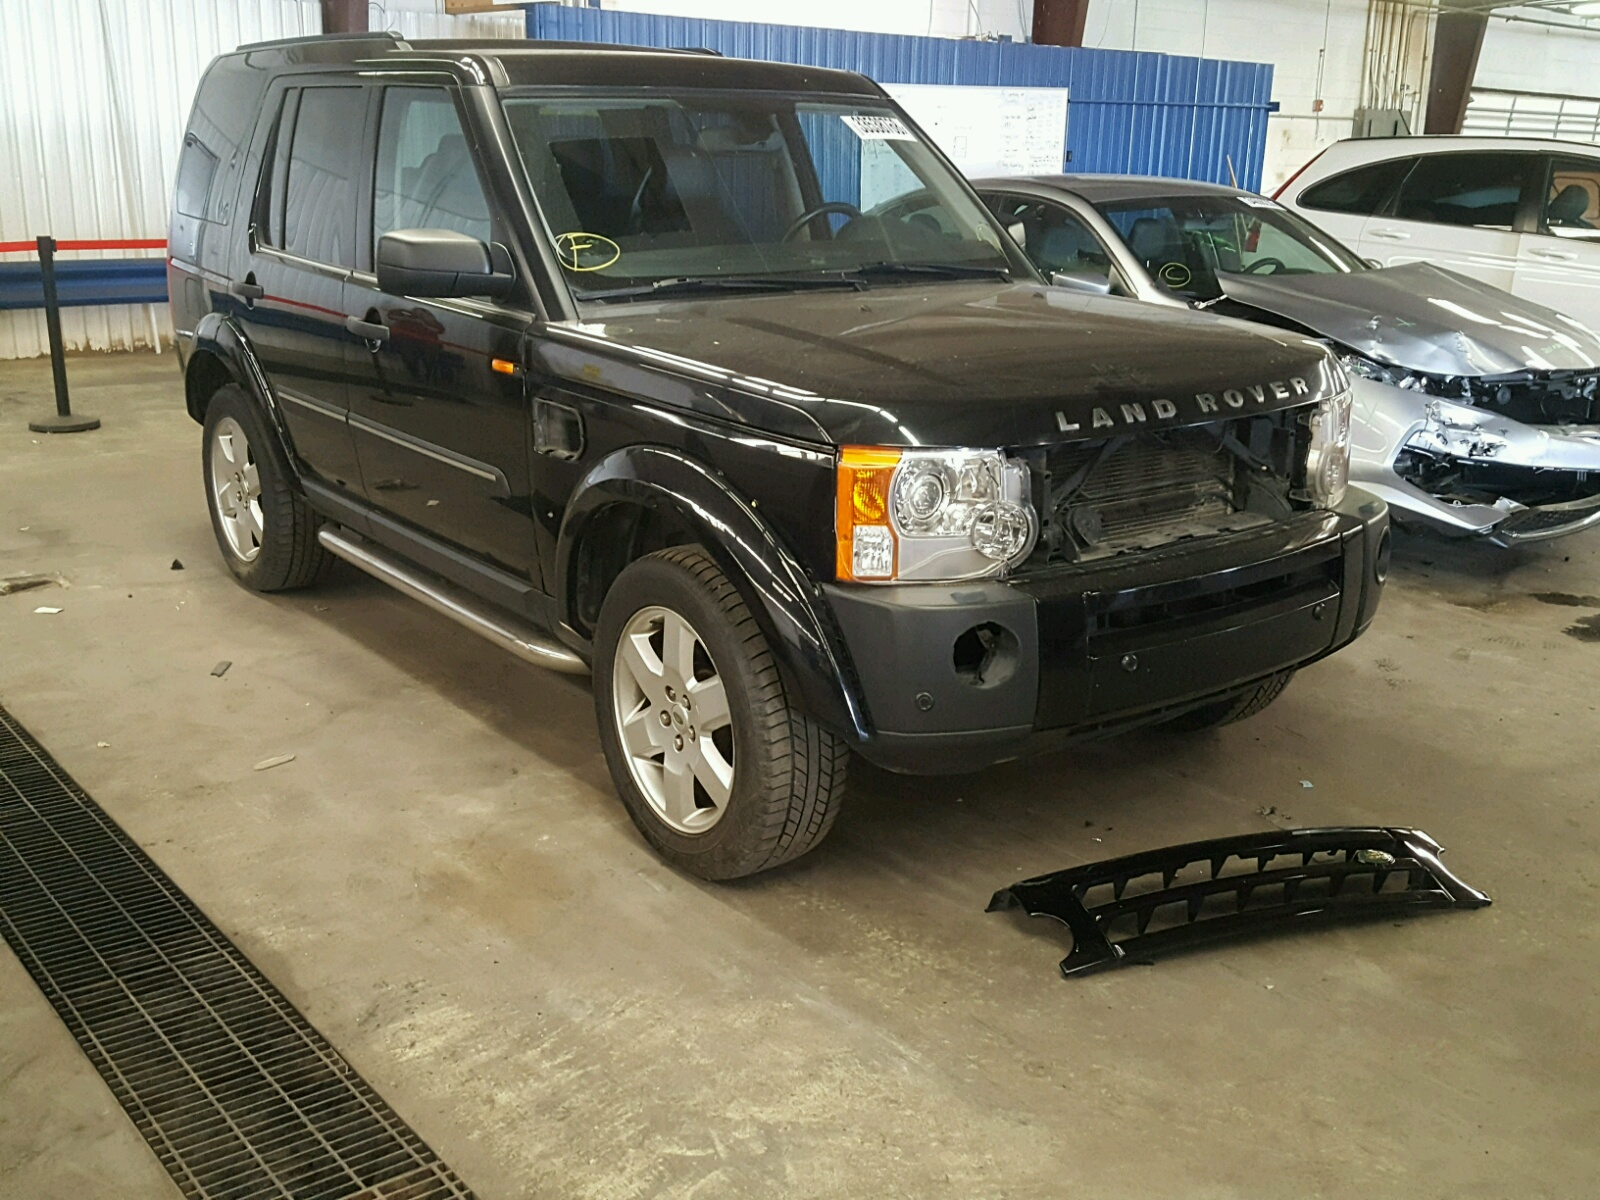 destruction land beach on west landrover rover palm carfinder vin for online ended auctions certificate en auction lot of copart auto fl hse discovery sale